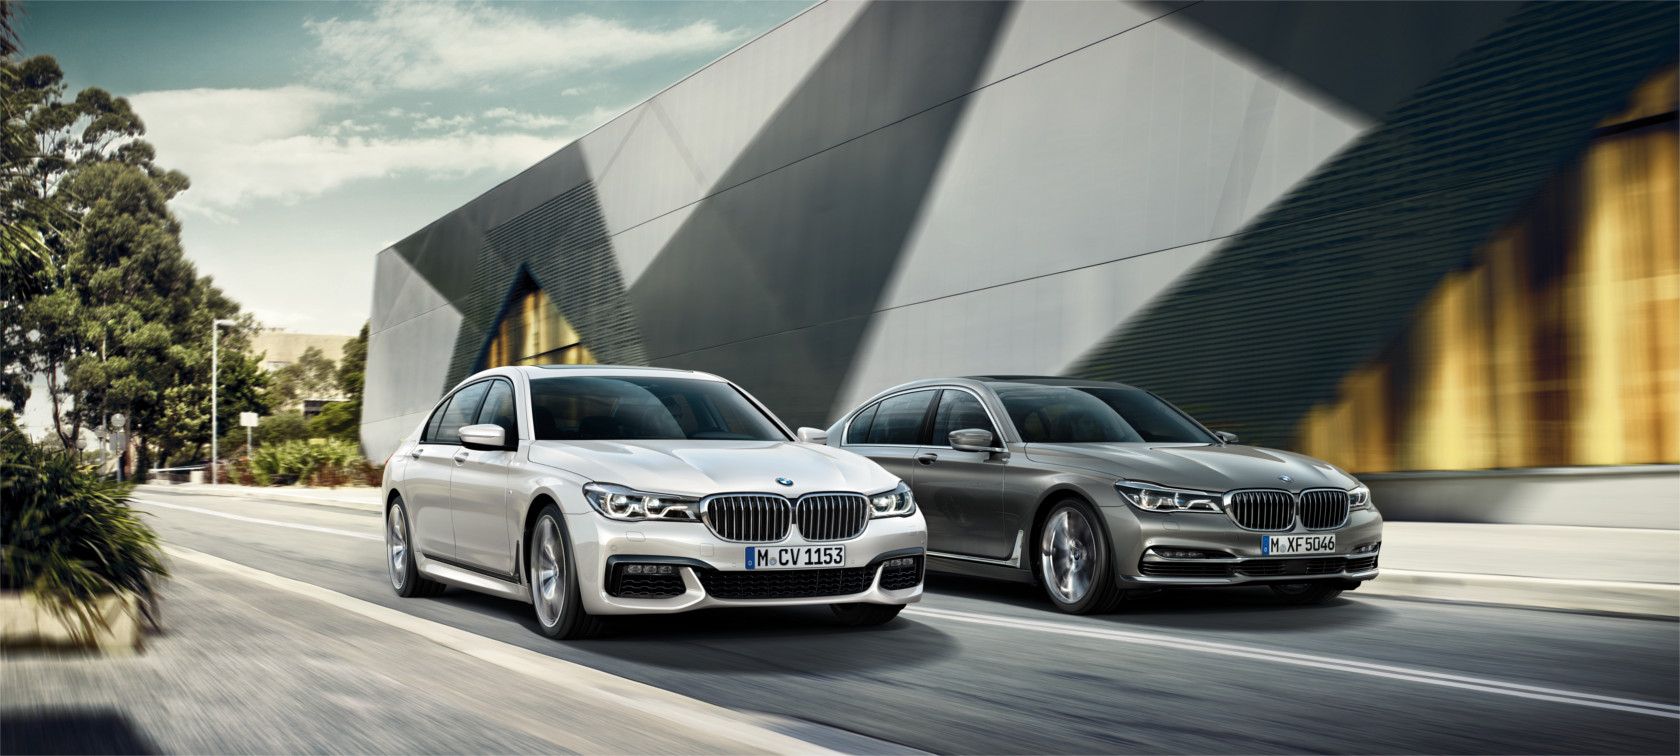 The equipment of the BMW 7 Series